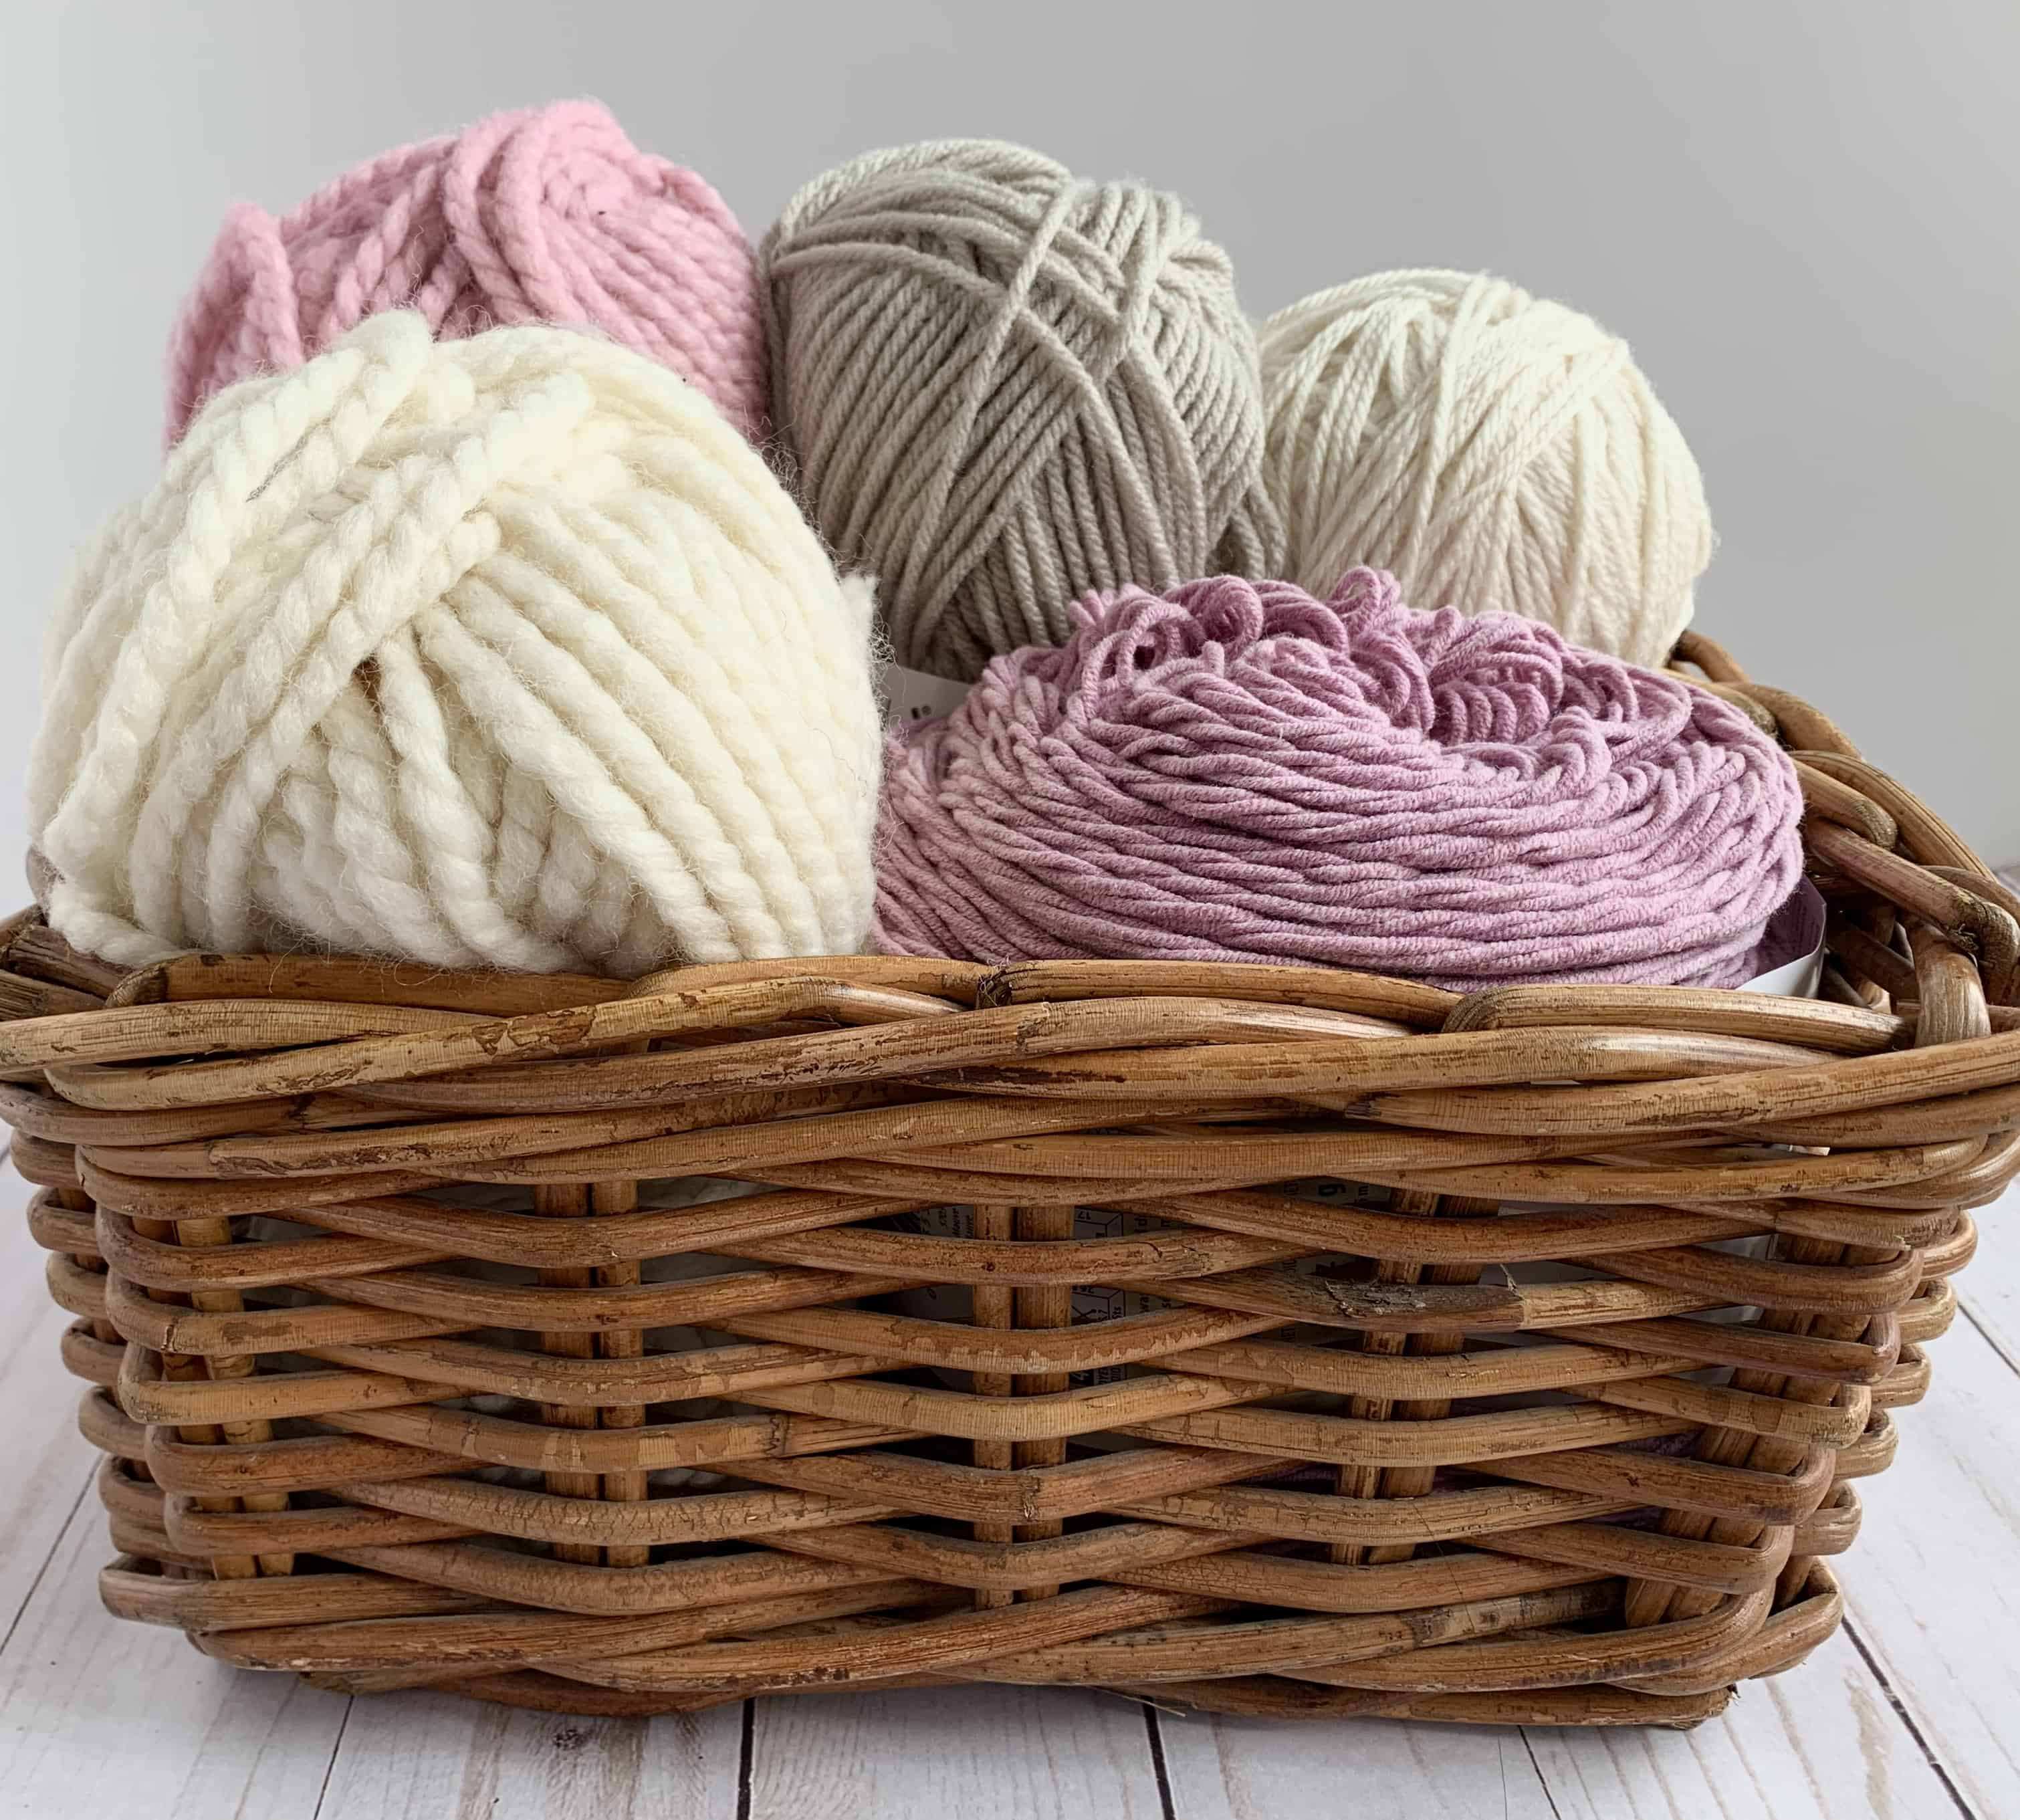 How to find yarn substitutes